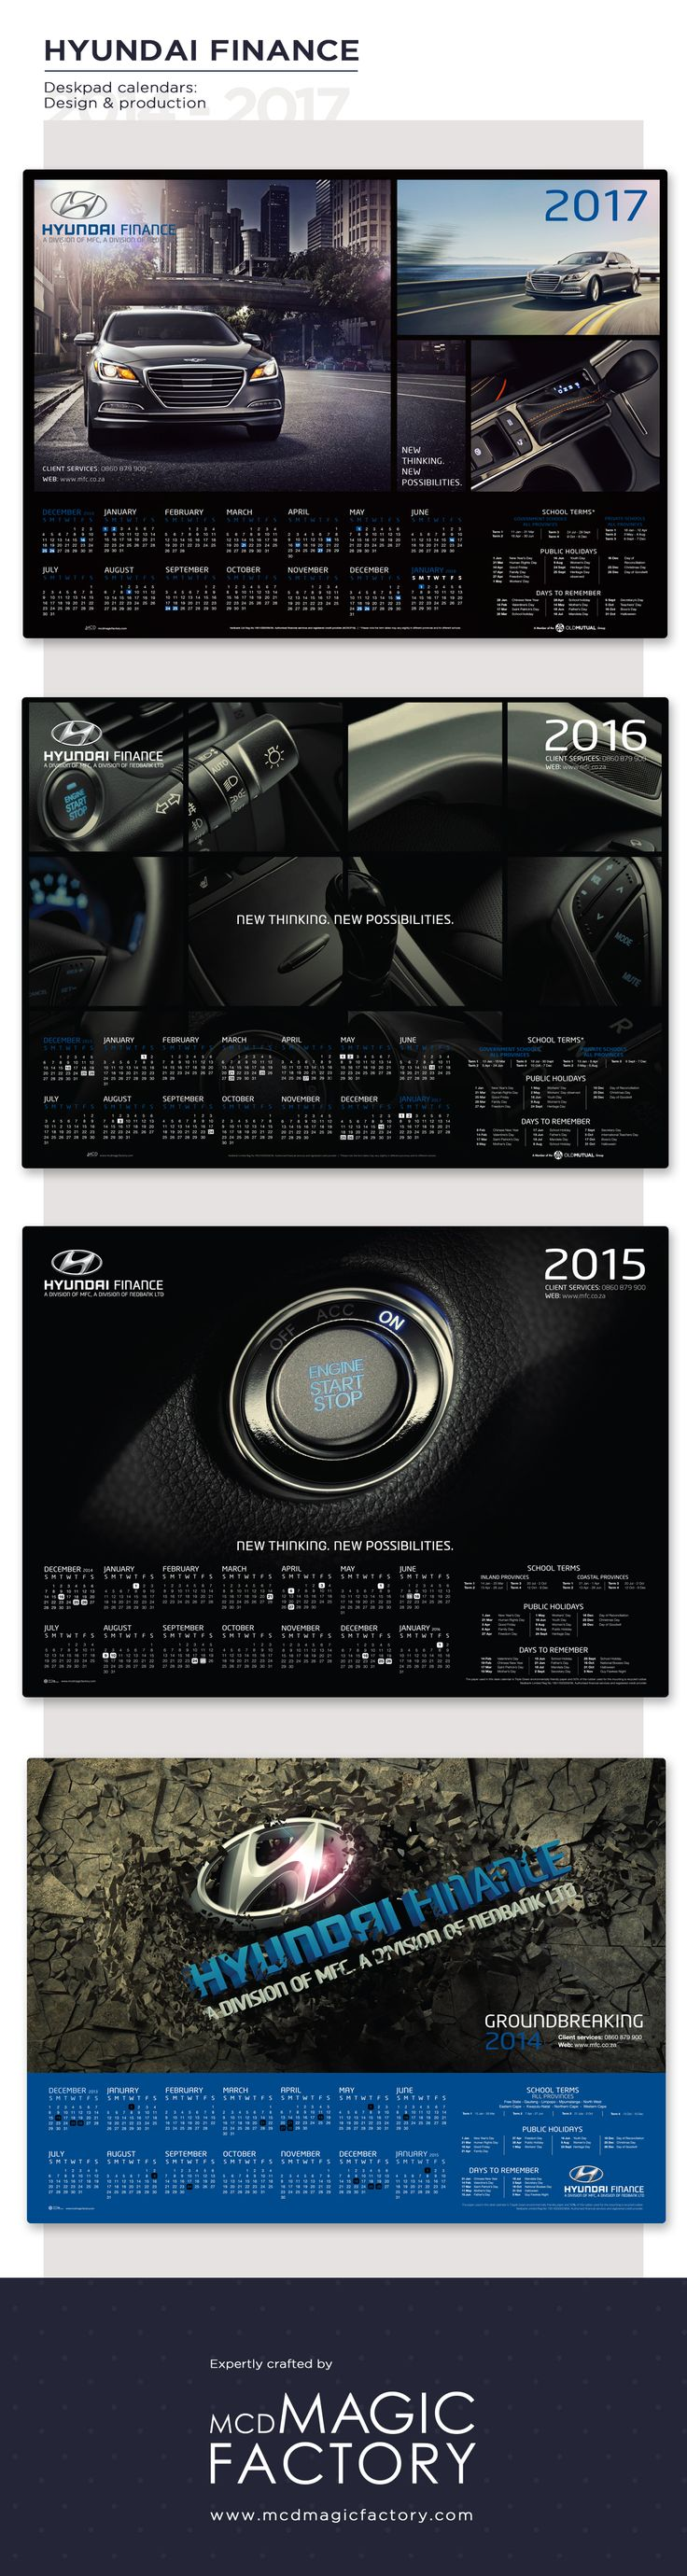 Client: Hyundai Finance | Year: 2014 - 2017 | Design and production of desk pad calendars for dealers.